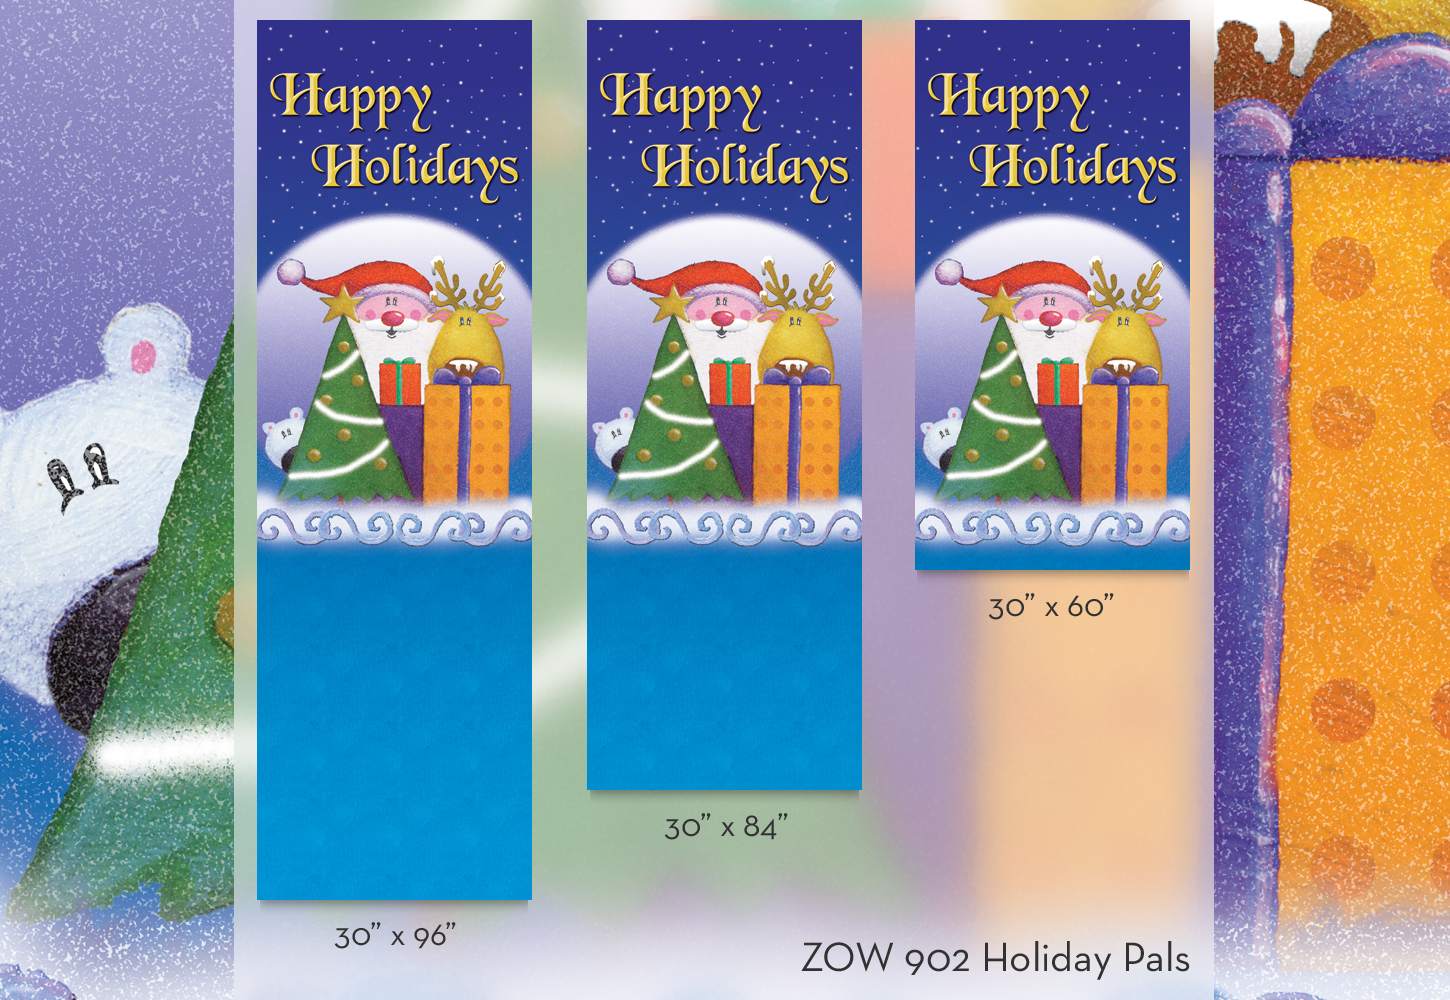 ZOW 902 Holiday Pals